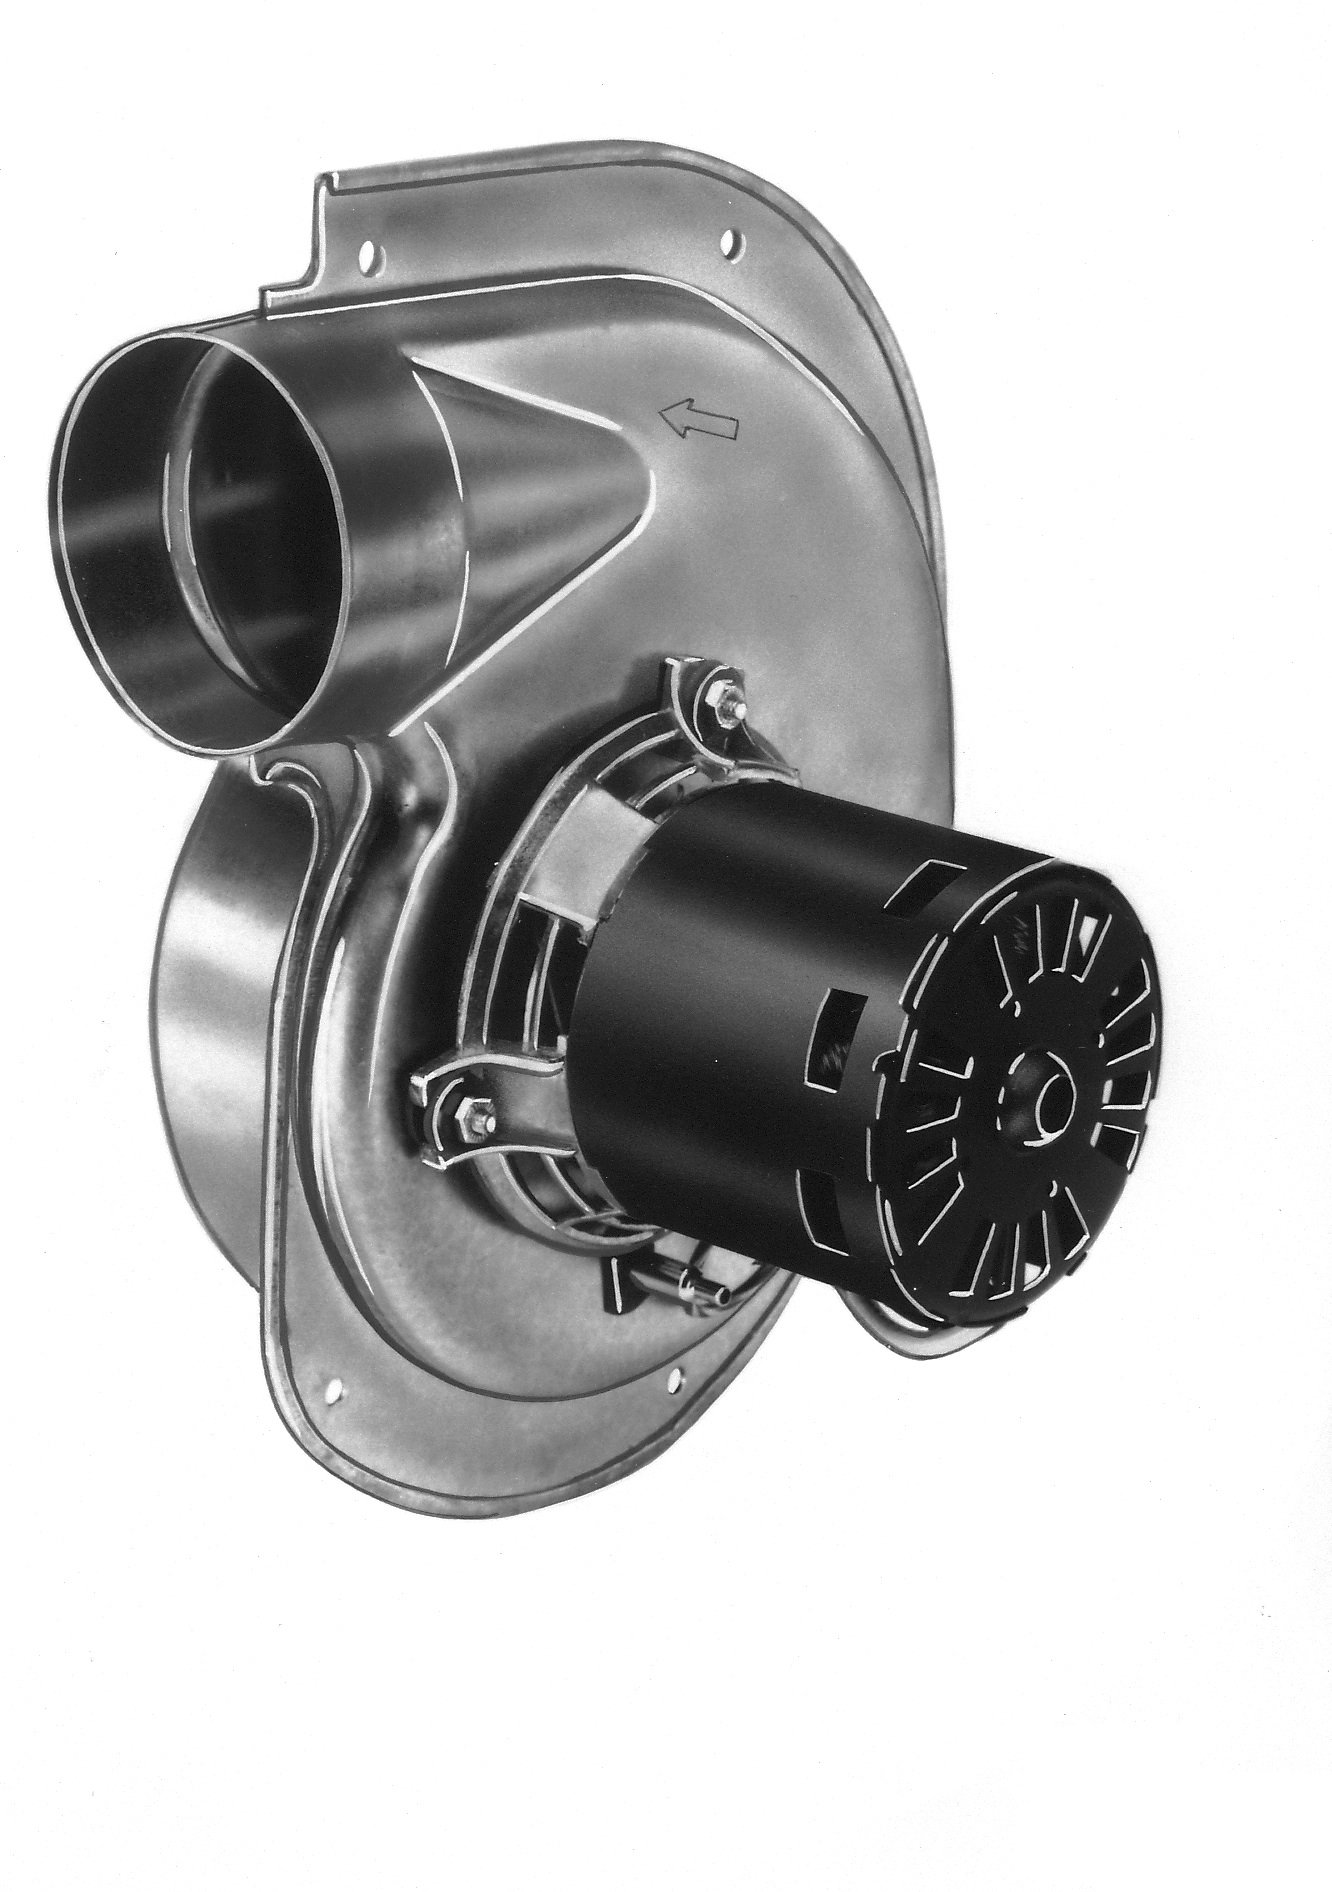 Fasco A141 3.3'' Frame Shaded Pole OEM Replacement Specific Purpose Blower with Ball Bearing, 1/60HP, 2,800 rpm, 115V, 60 Hz, 1 amps